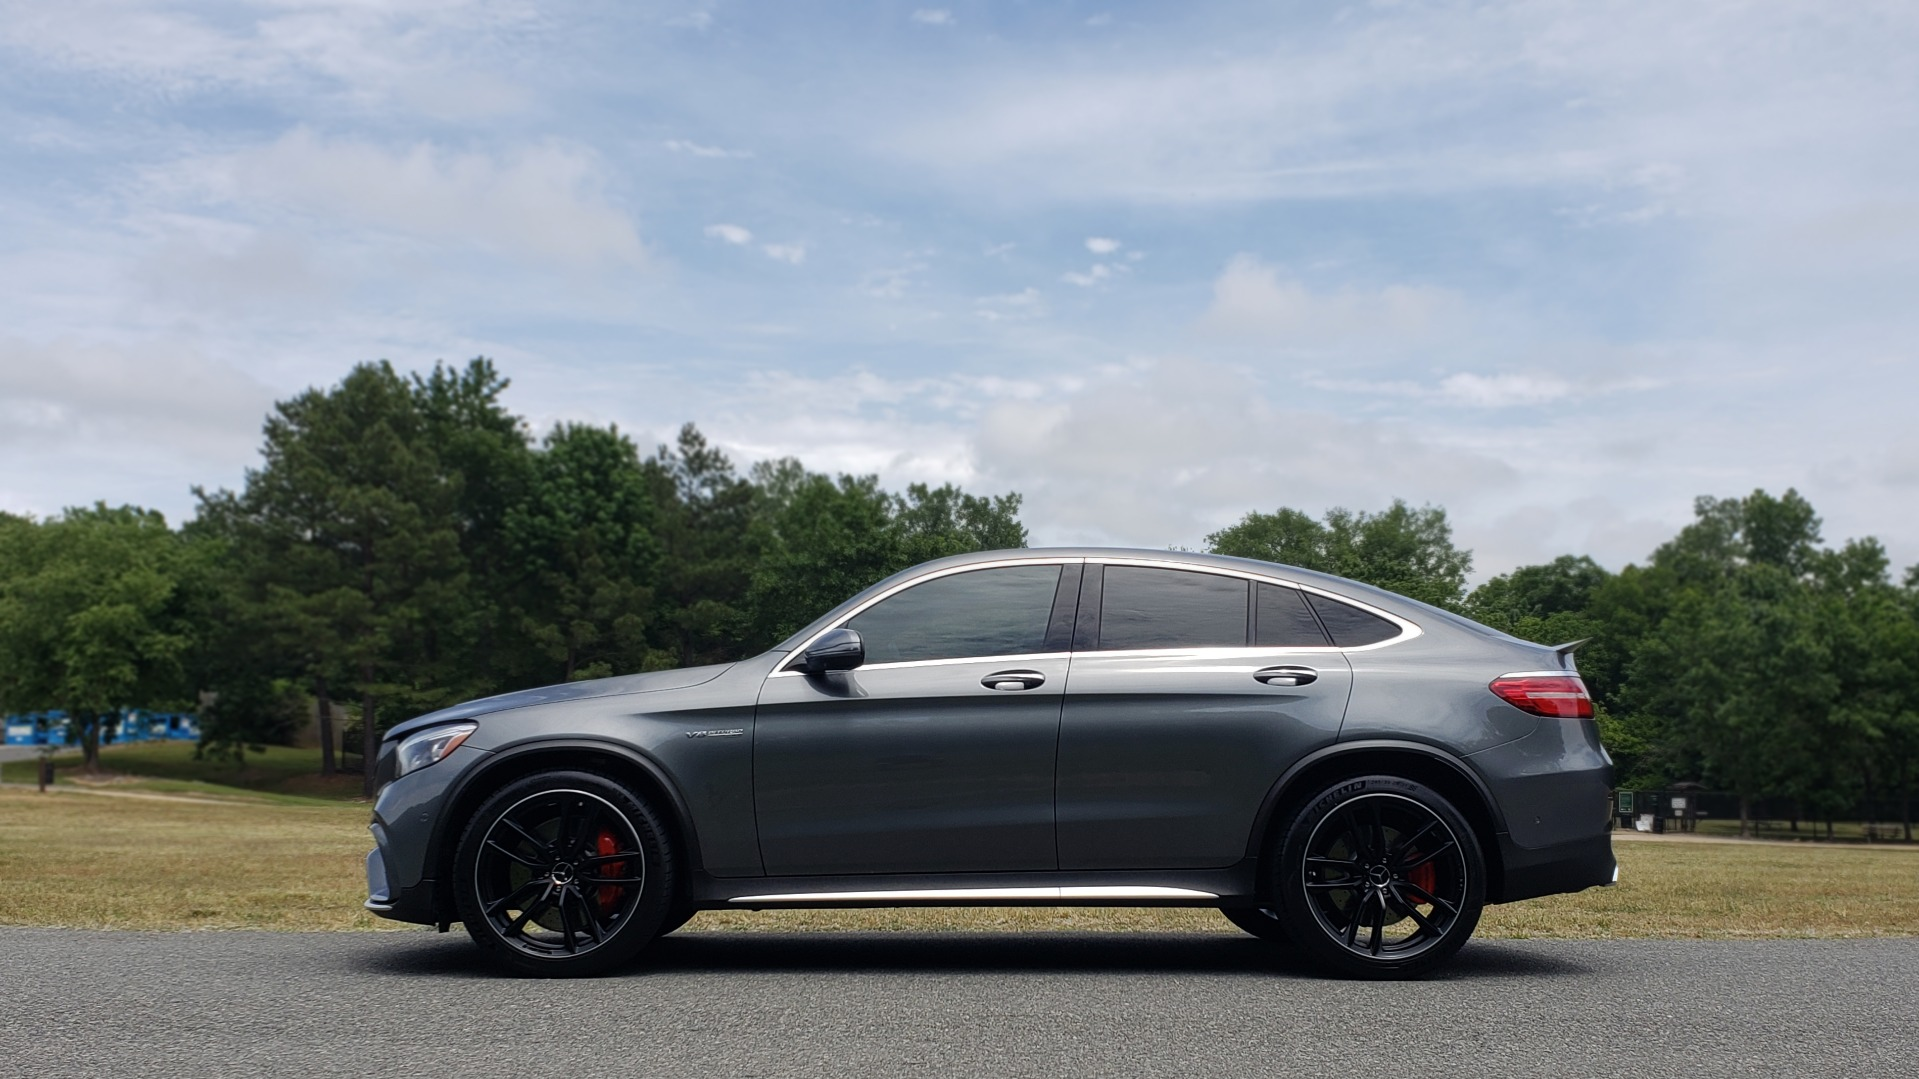 Used 2019 Mercedes-Benz GLC AMG 63 S 4MATIC COUPE / NAV / TRACK PACE APP / AMG PERF EXH / MULTIMEDIA for sale Sold at Formula Imports in Charlotte NC 28227 3